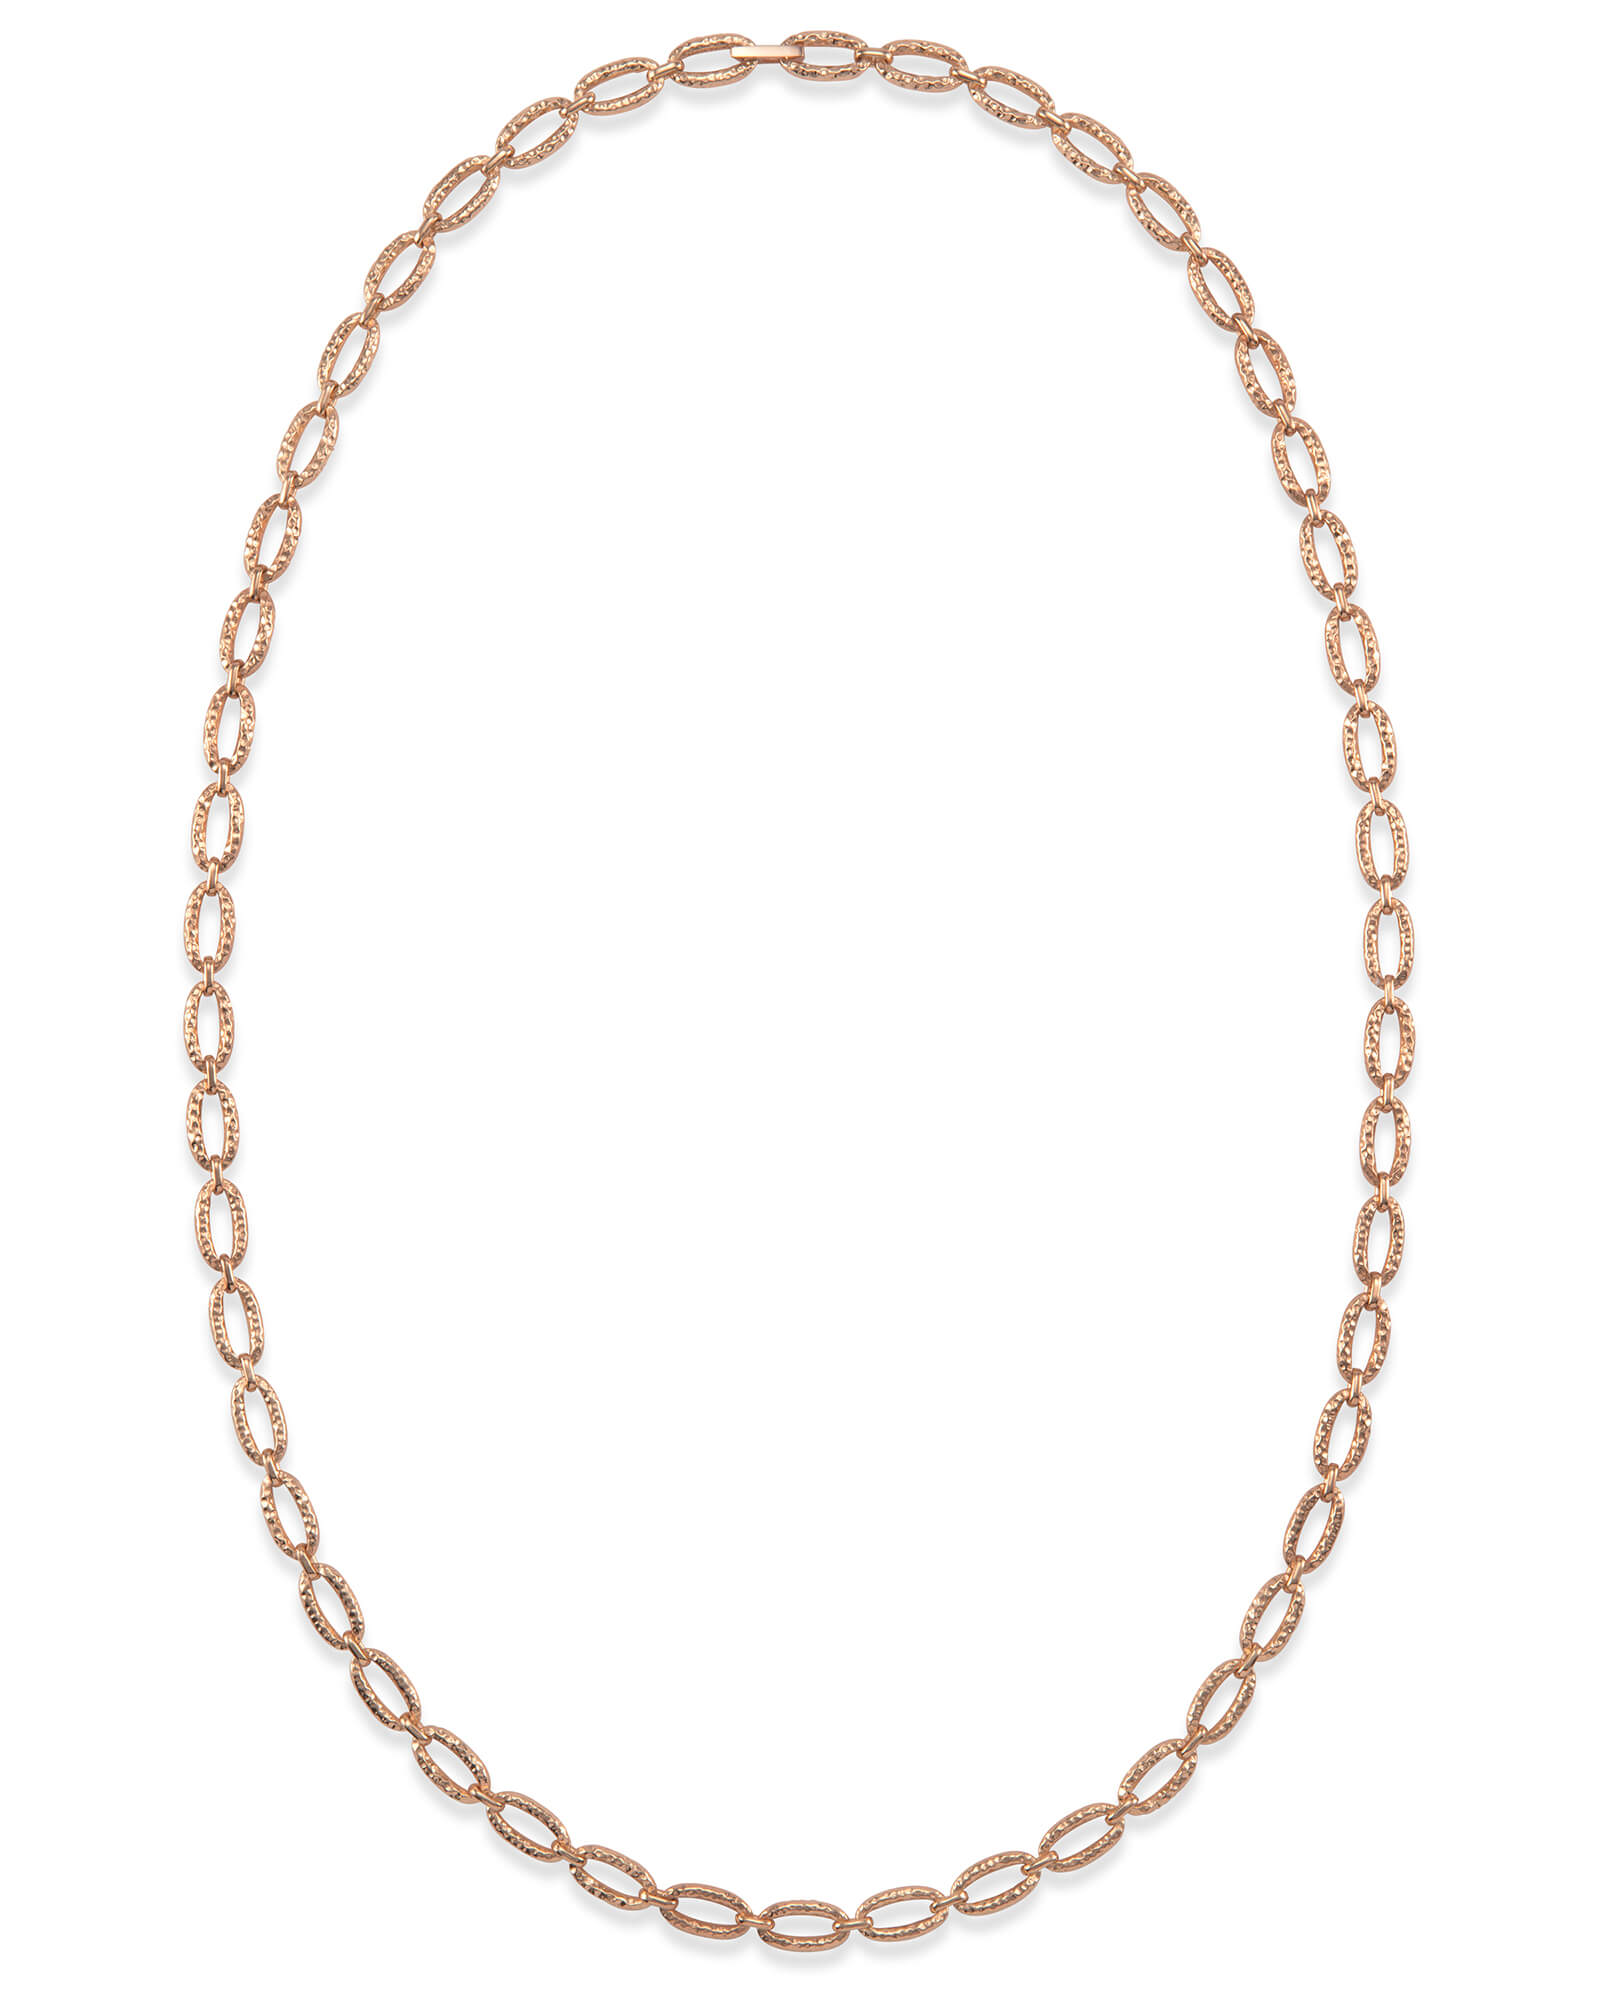 "32"" Chain Link Necklace in Rose Gold"